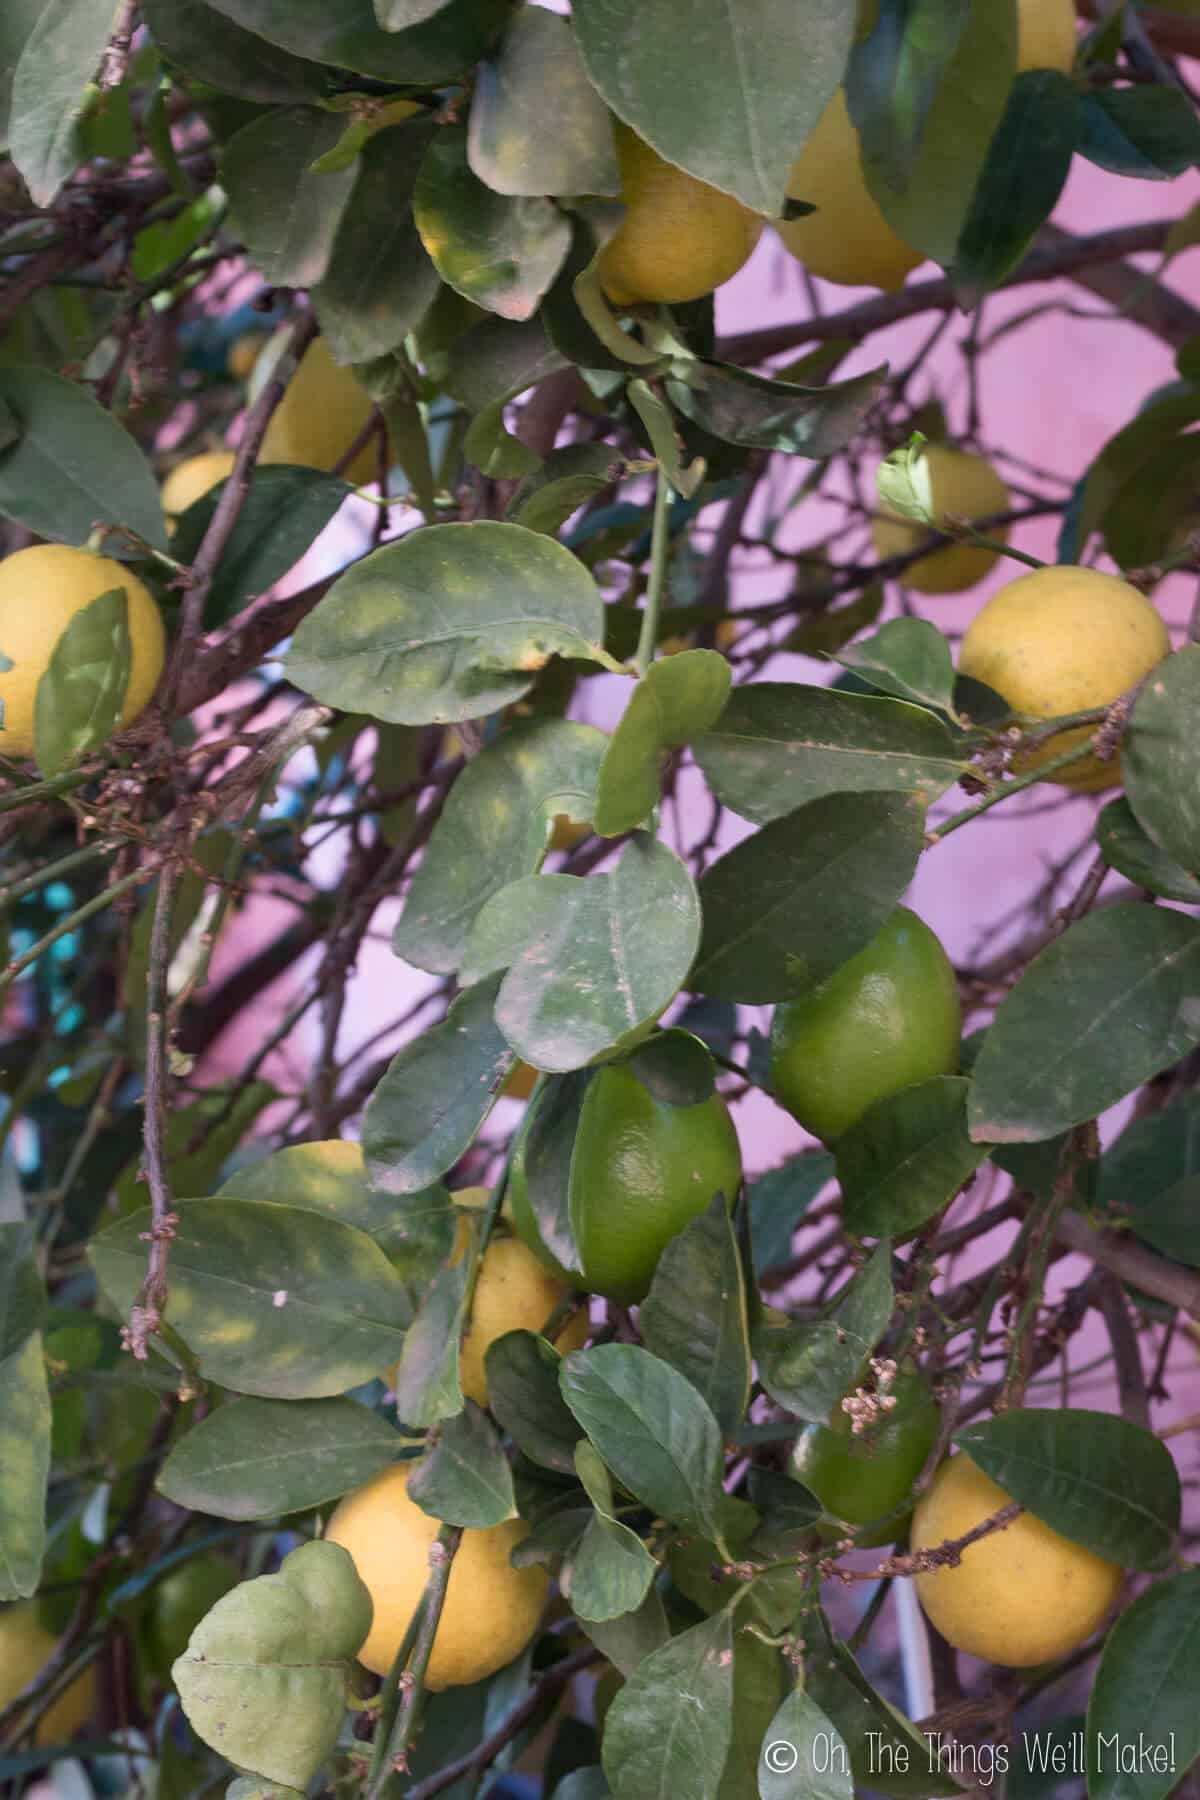 A key lime tree filled with varying colors of limes, some yellow and some green.